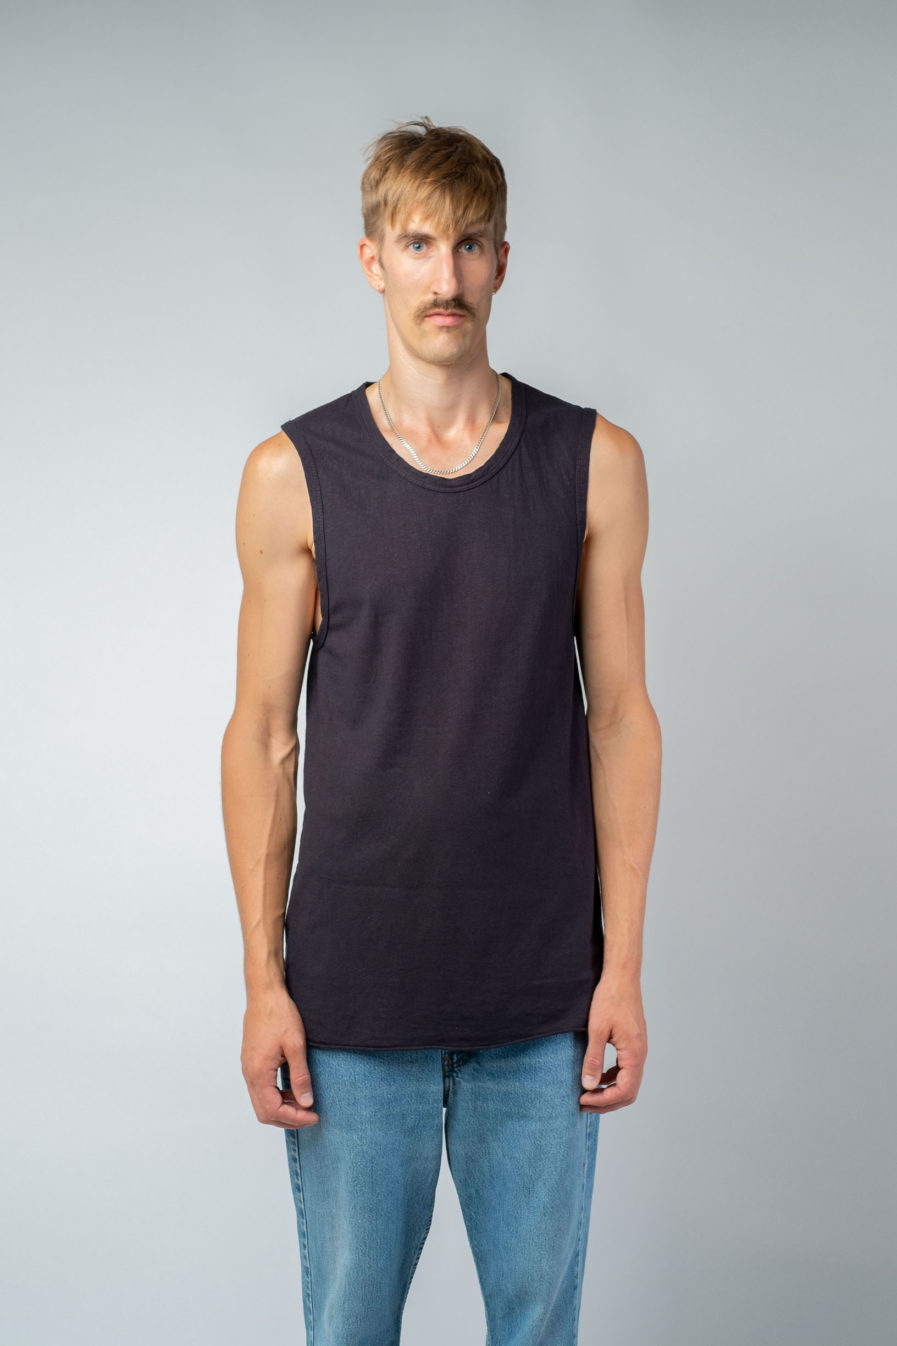 MAN unisex singlet tanktop hemp organic cotton DRIES Carbon black front